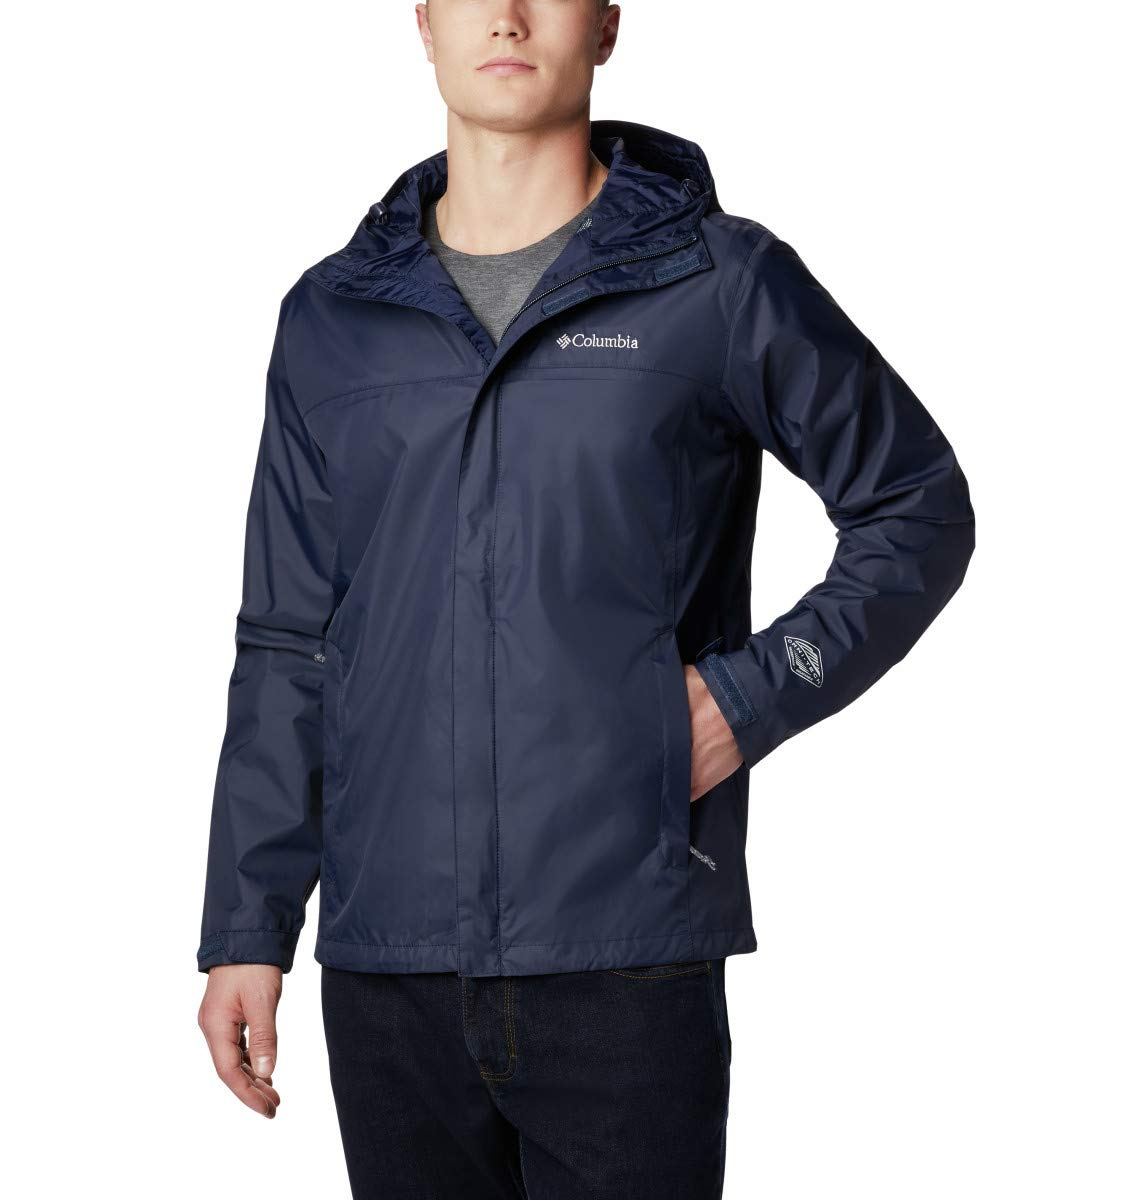 Columbia Men's Big & Tall Watertight II Packable Rain Jacket,Collegiate Navy,4X by Columbia